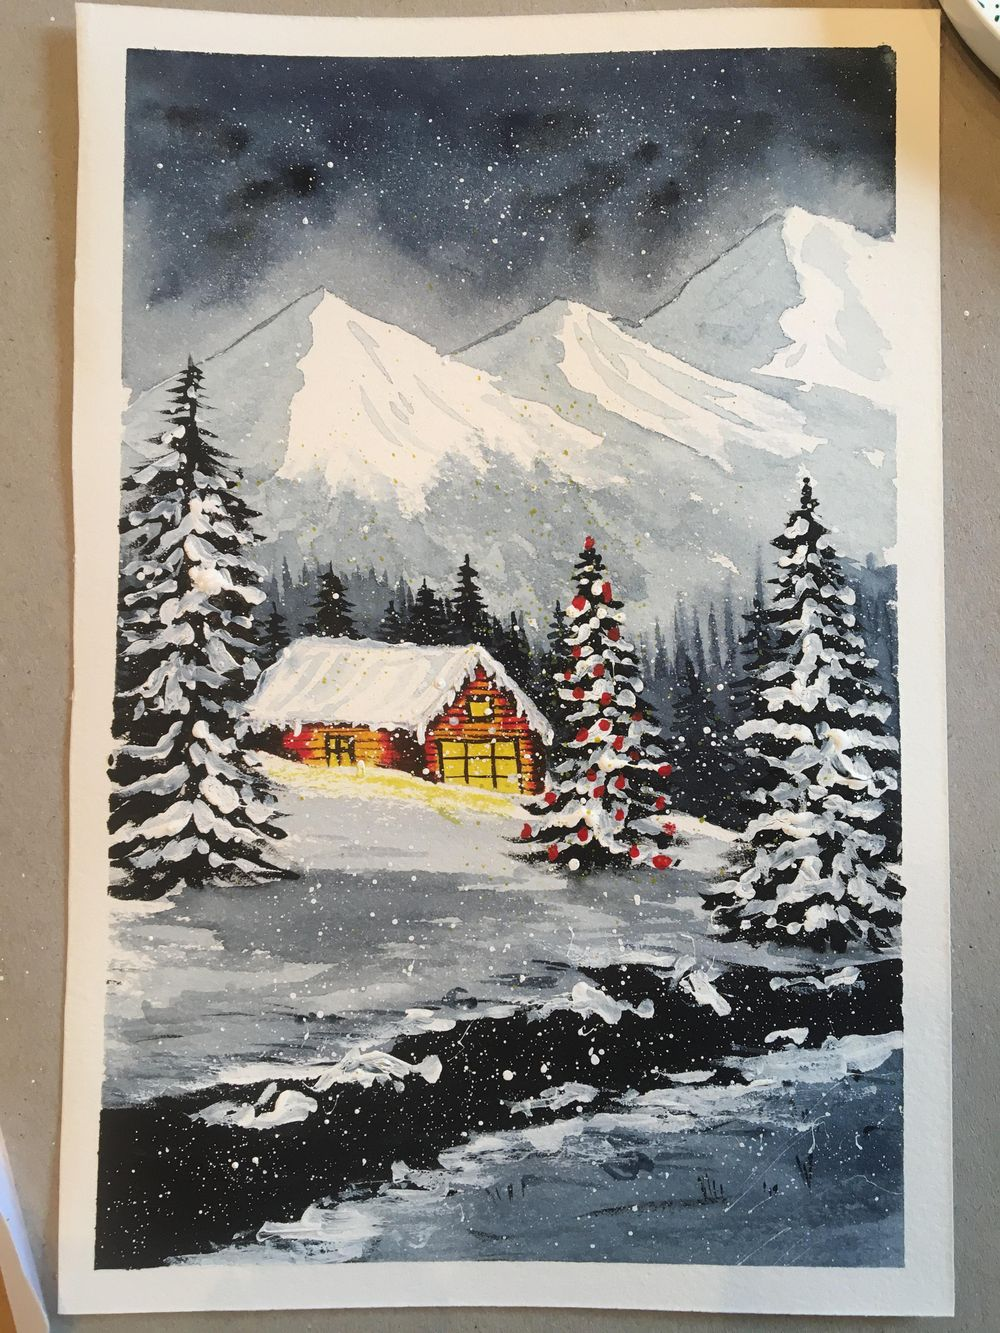 Snowy night - image 1 - student project